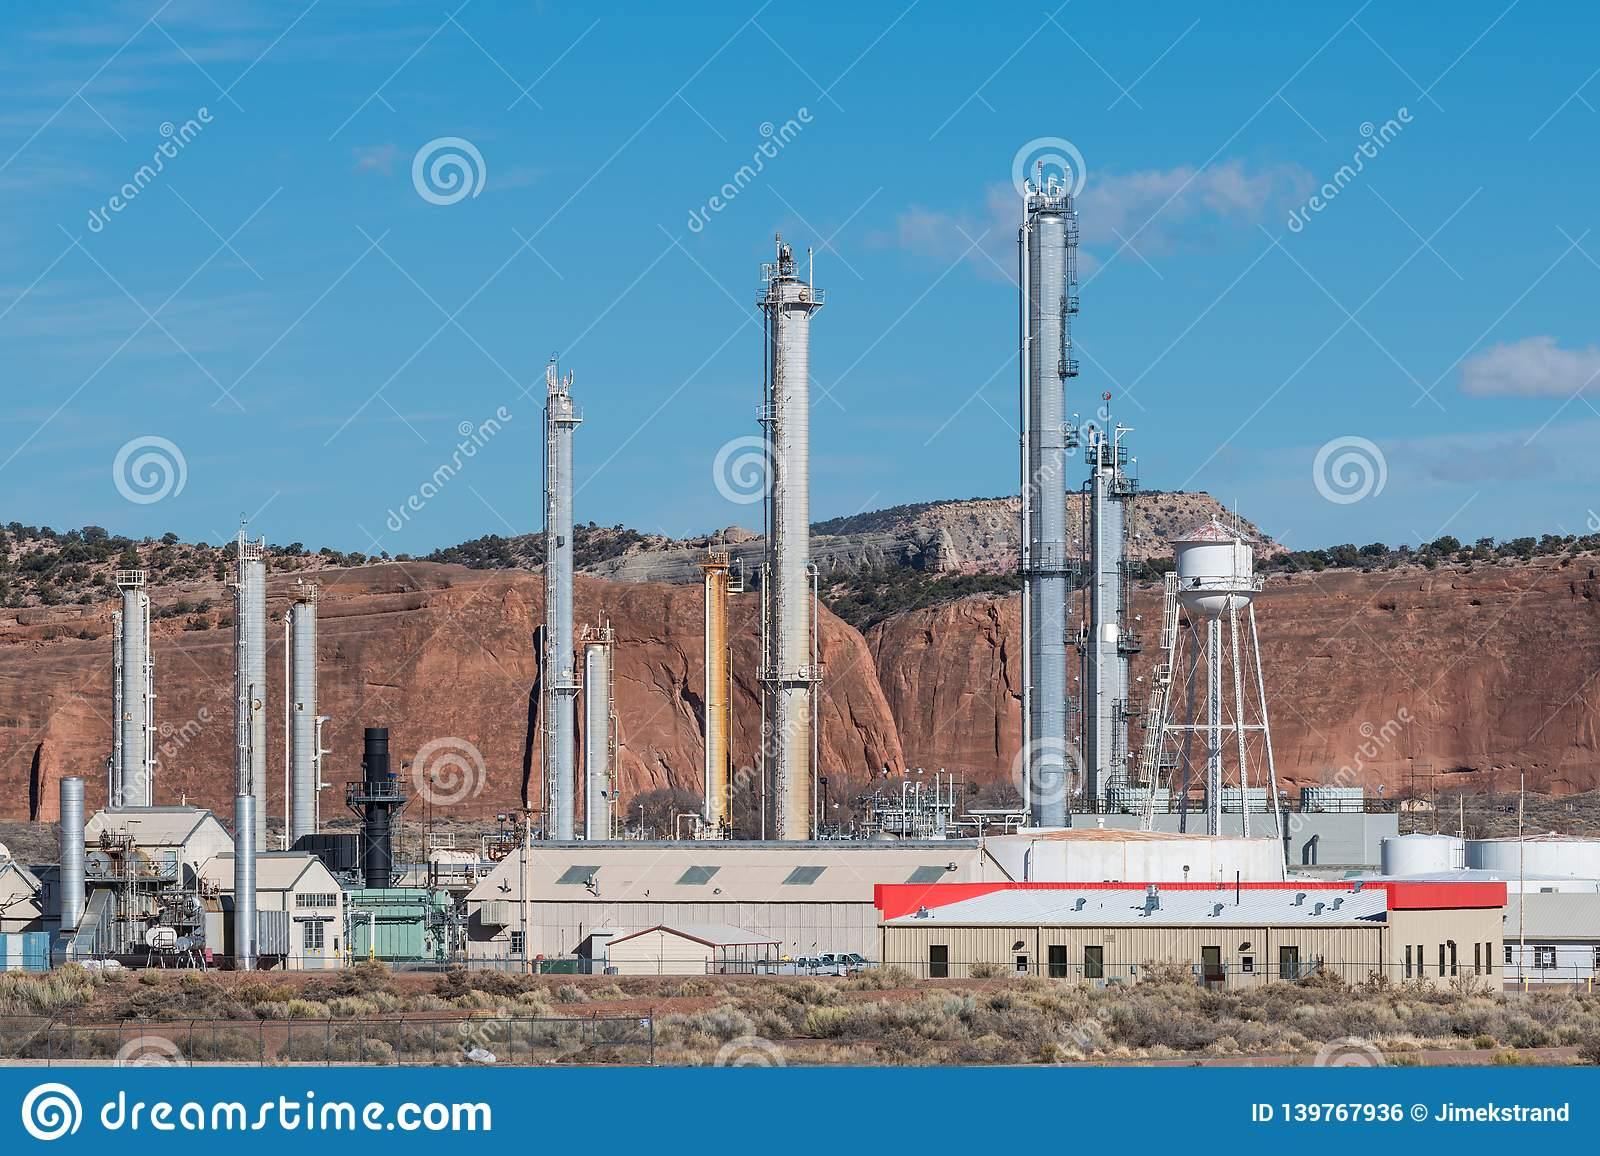 A natural gas refinery contrasted with the natural red rock landscape of the southwestern United States